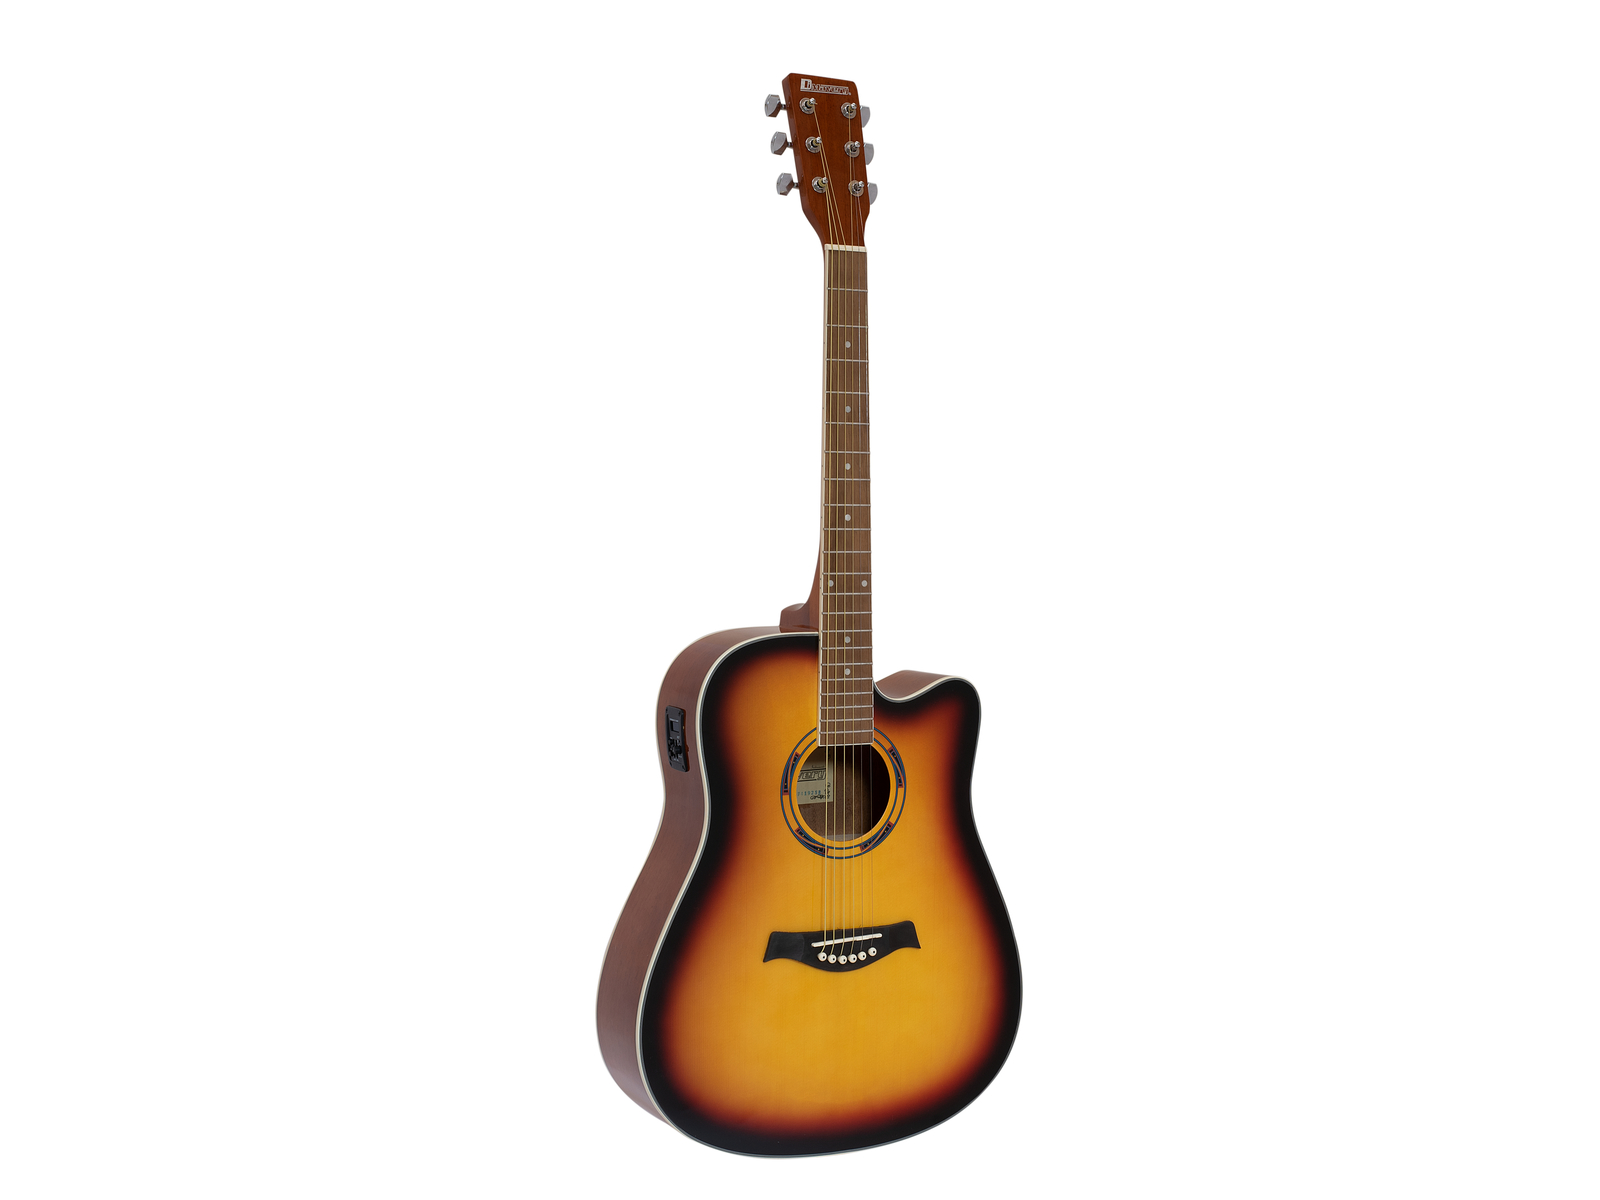 DIMAVERY DR-520 Dreadnought, s